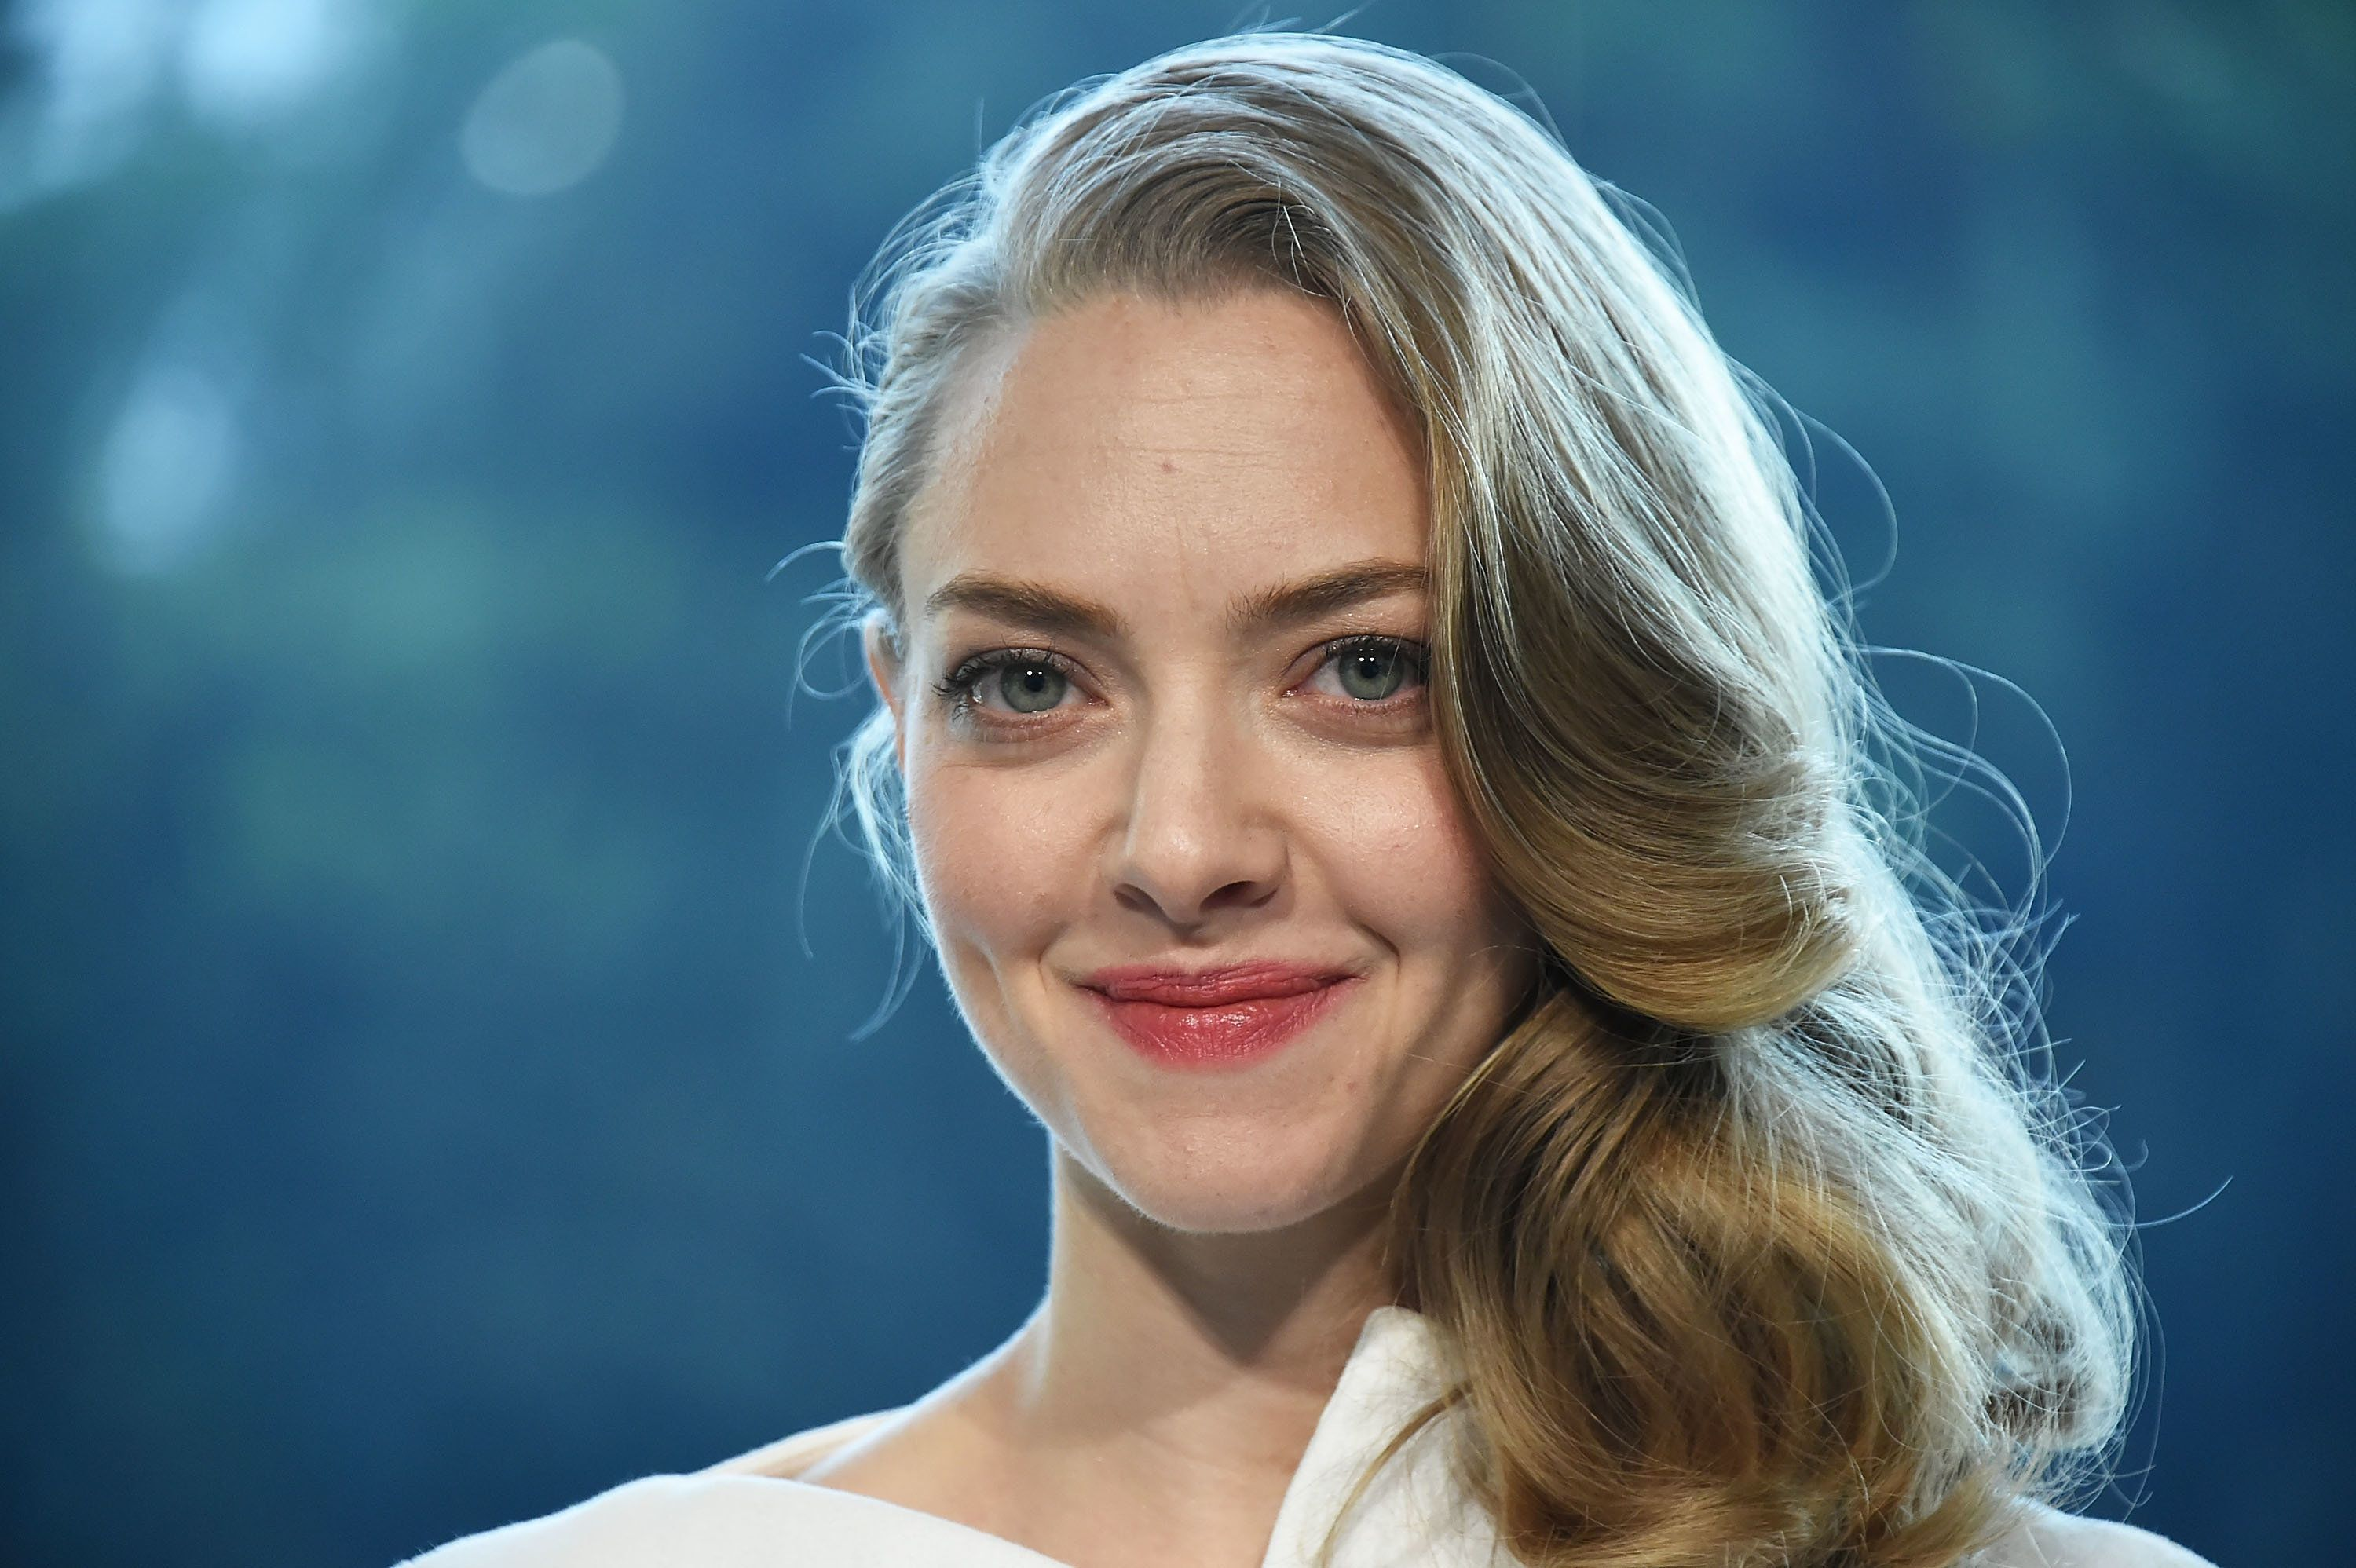 TOKYO, JAPAN - OCTOBER 09:  Amanda Seyfried attends the promotional event for Shiseido's Cle de Peau Beaute at the Palace Hotel on October 9, 2015 in Tokyo, Japan.  (Photo by Jun Sato/Getty Images for cle de peau BEAUTE)